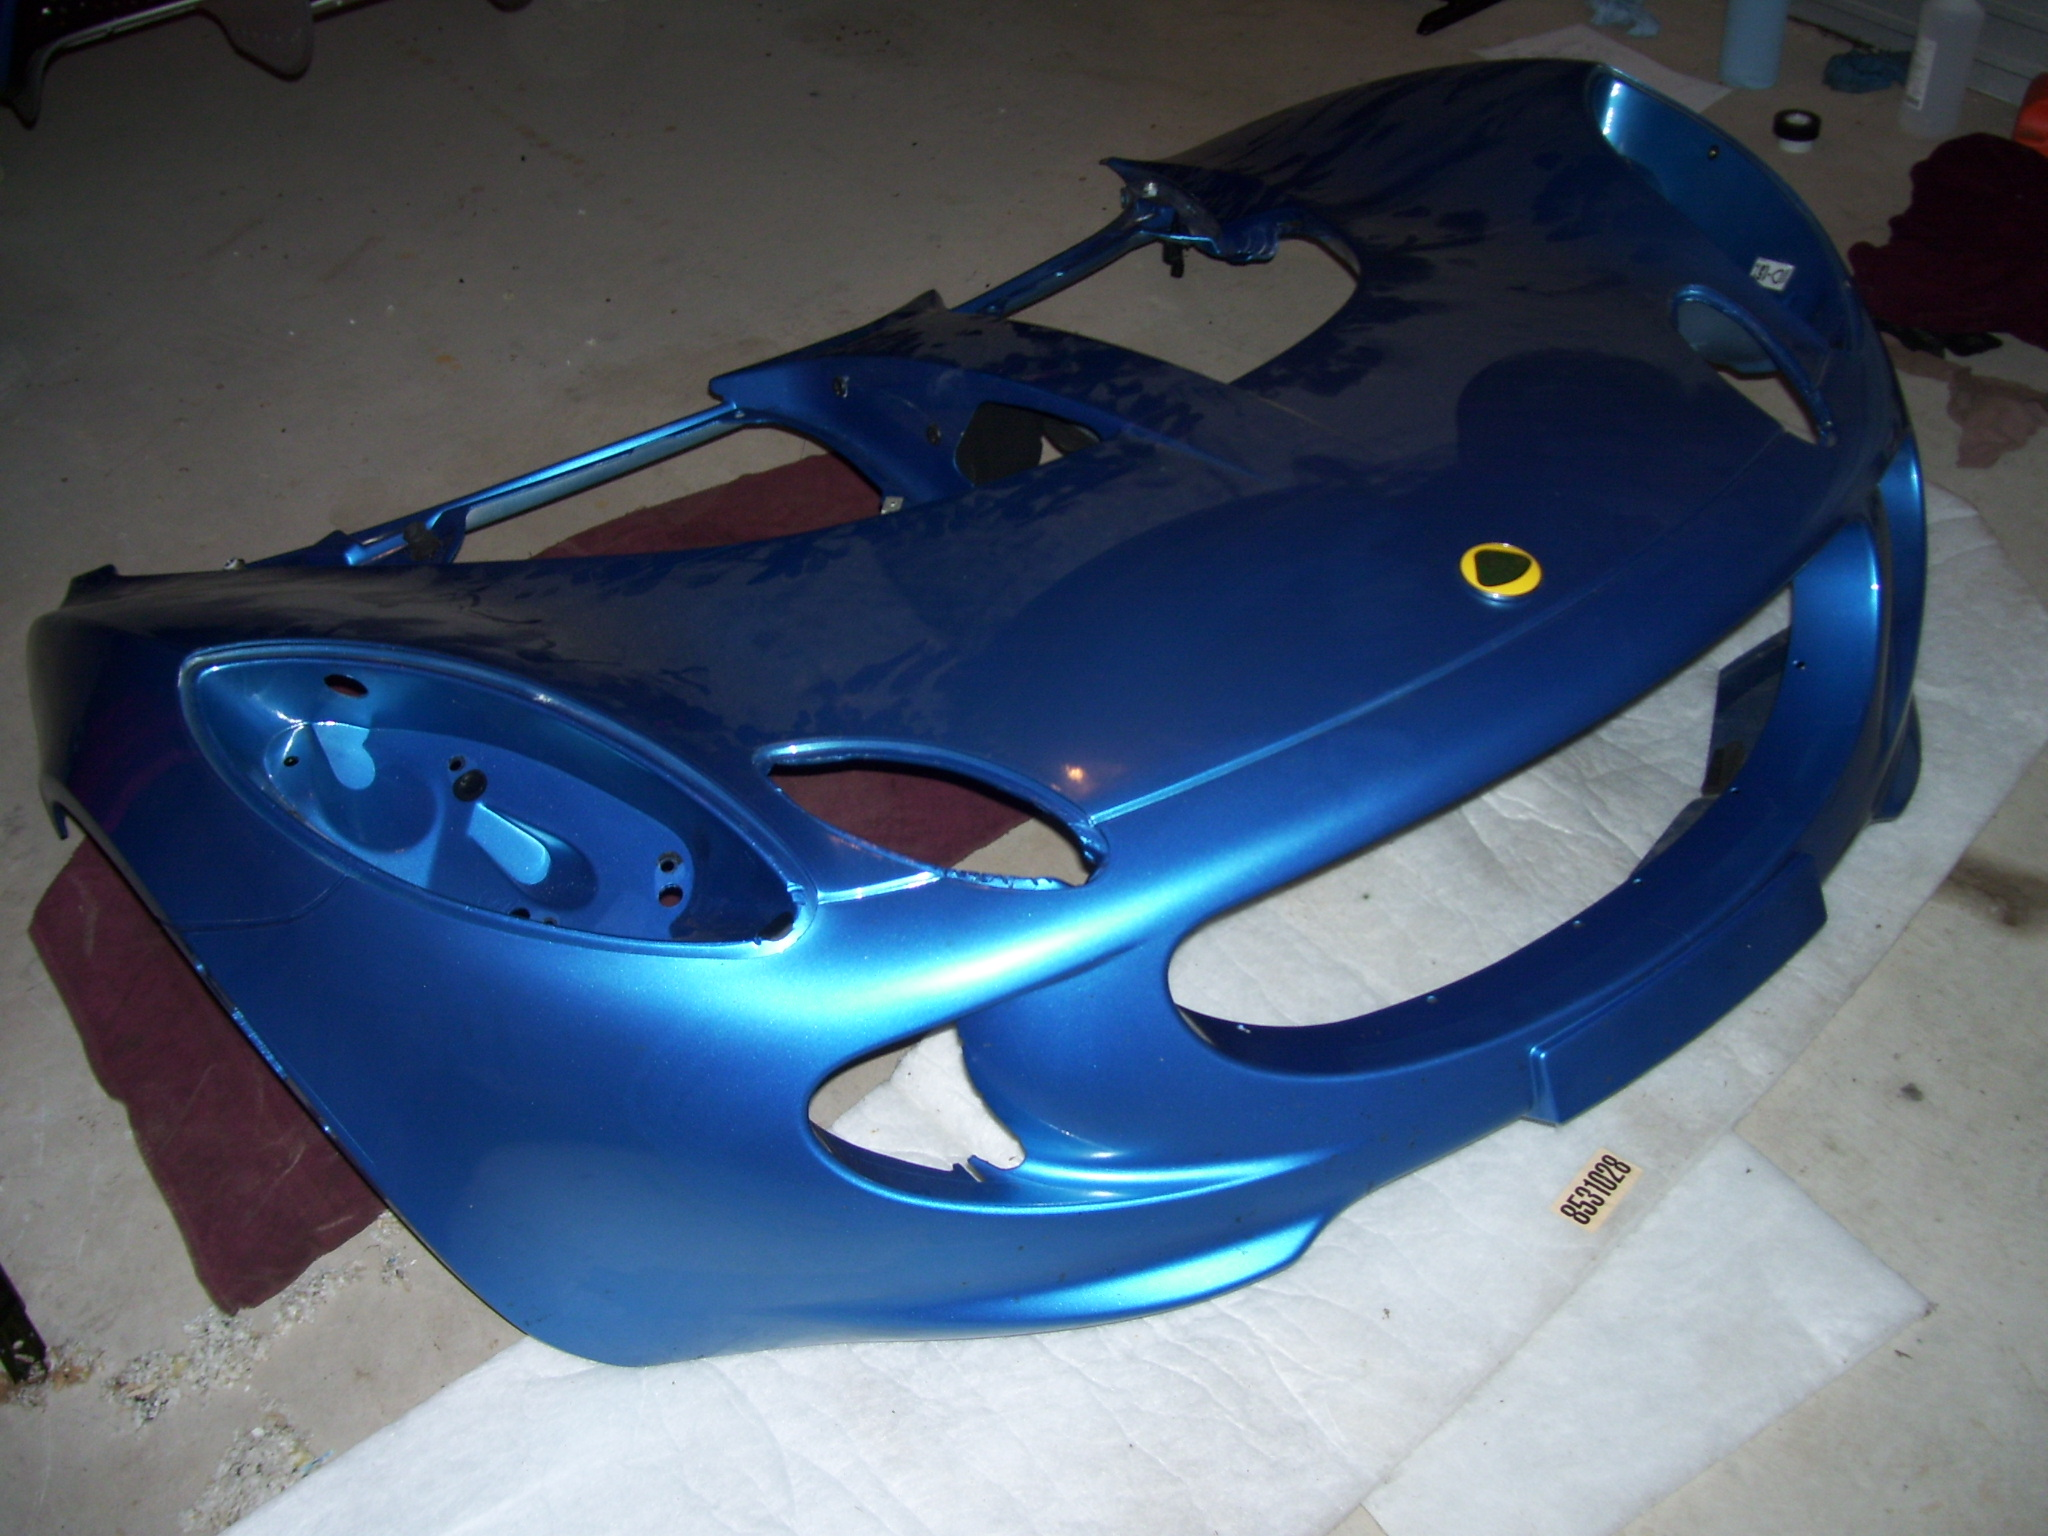 Aiutiamo Patrizio ad acquistare una Lotus! 173349d1316897427-fs-2005-lotus-elise-front-rear-clam-shells-excellent-condition-1-750-each-obo-10